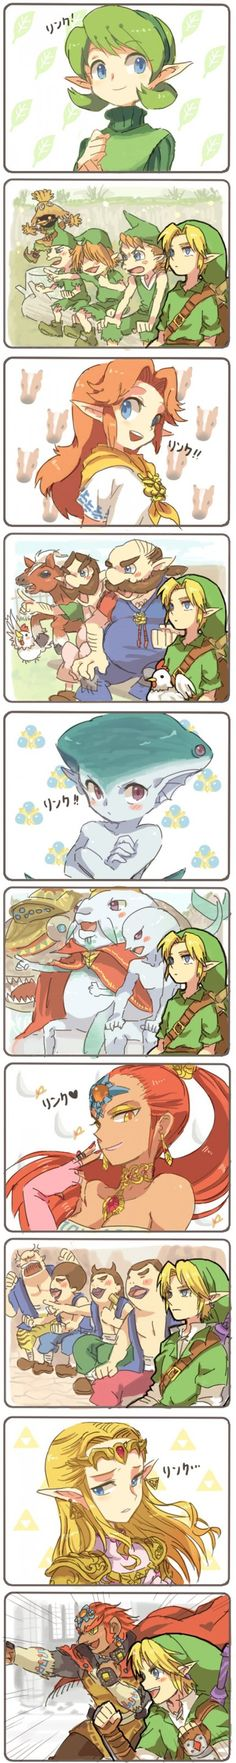 Who's the Prettiest Sage in Hyrule? #LegendofZelda